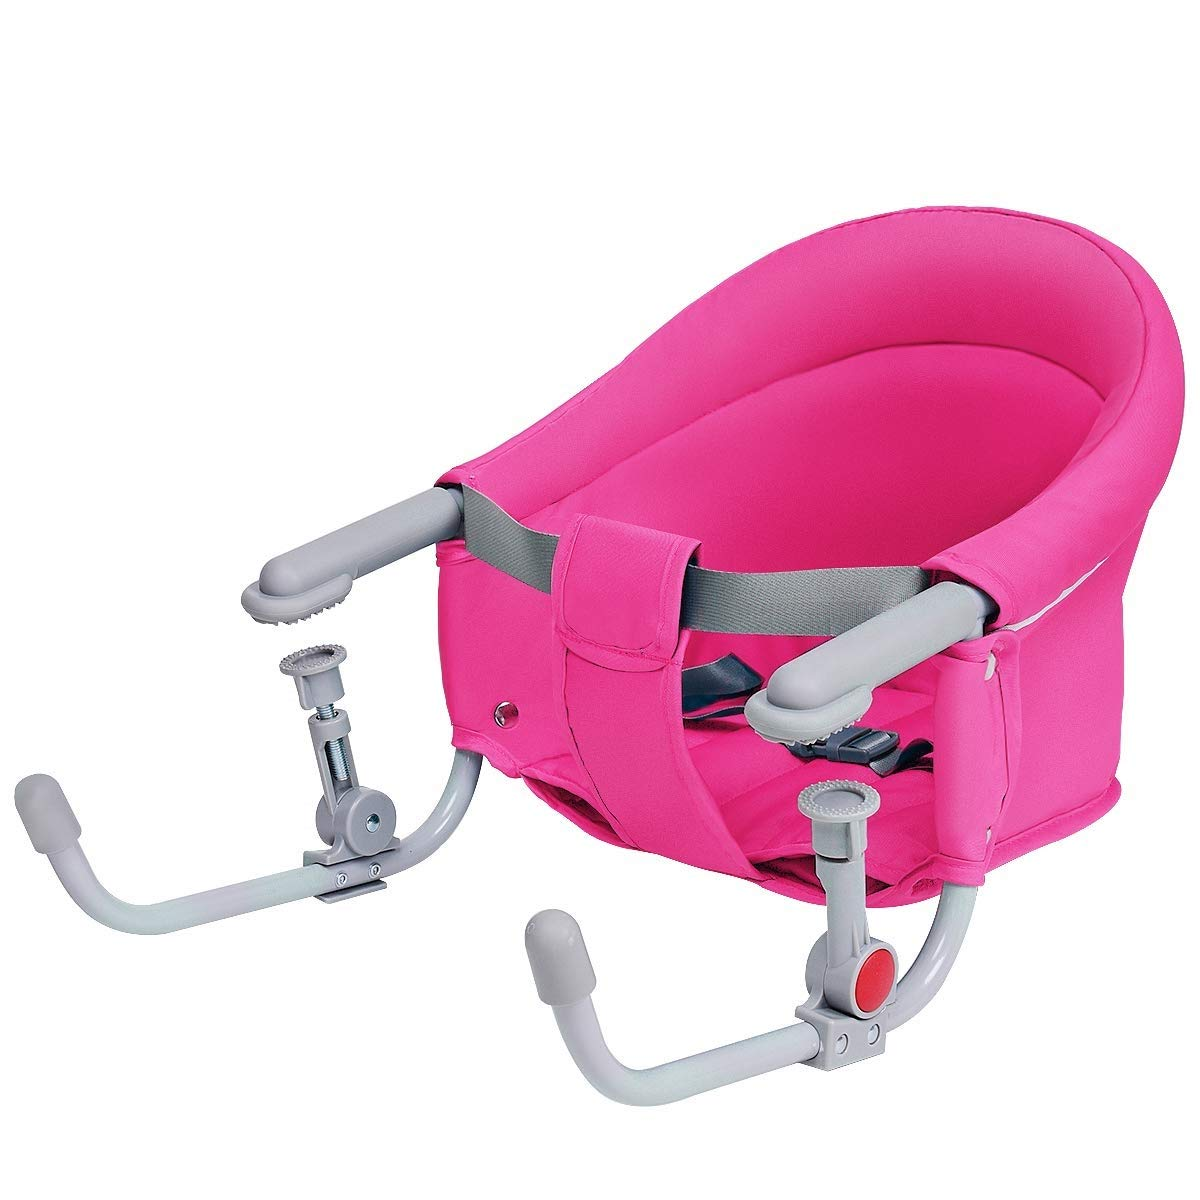 Costzon Hook On Chair, Clip on High Chair w/Tight Fixing Clip, Iron Pipe Frame, Machine-Washable Fabric, Storage Pocket, Portable Feeding Seat for Home Restaurant Travel, Baby Fast Table Chair (Pink)